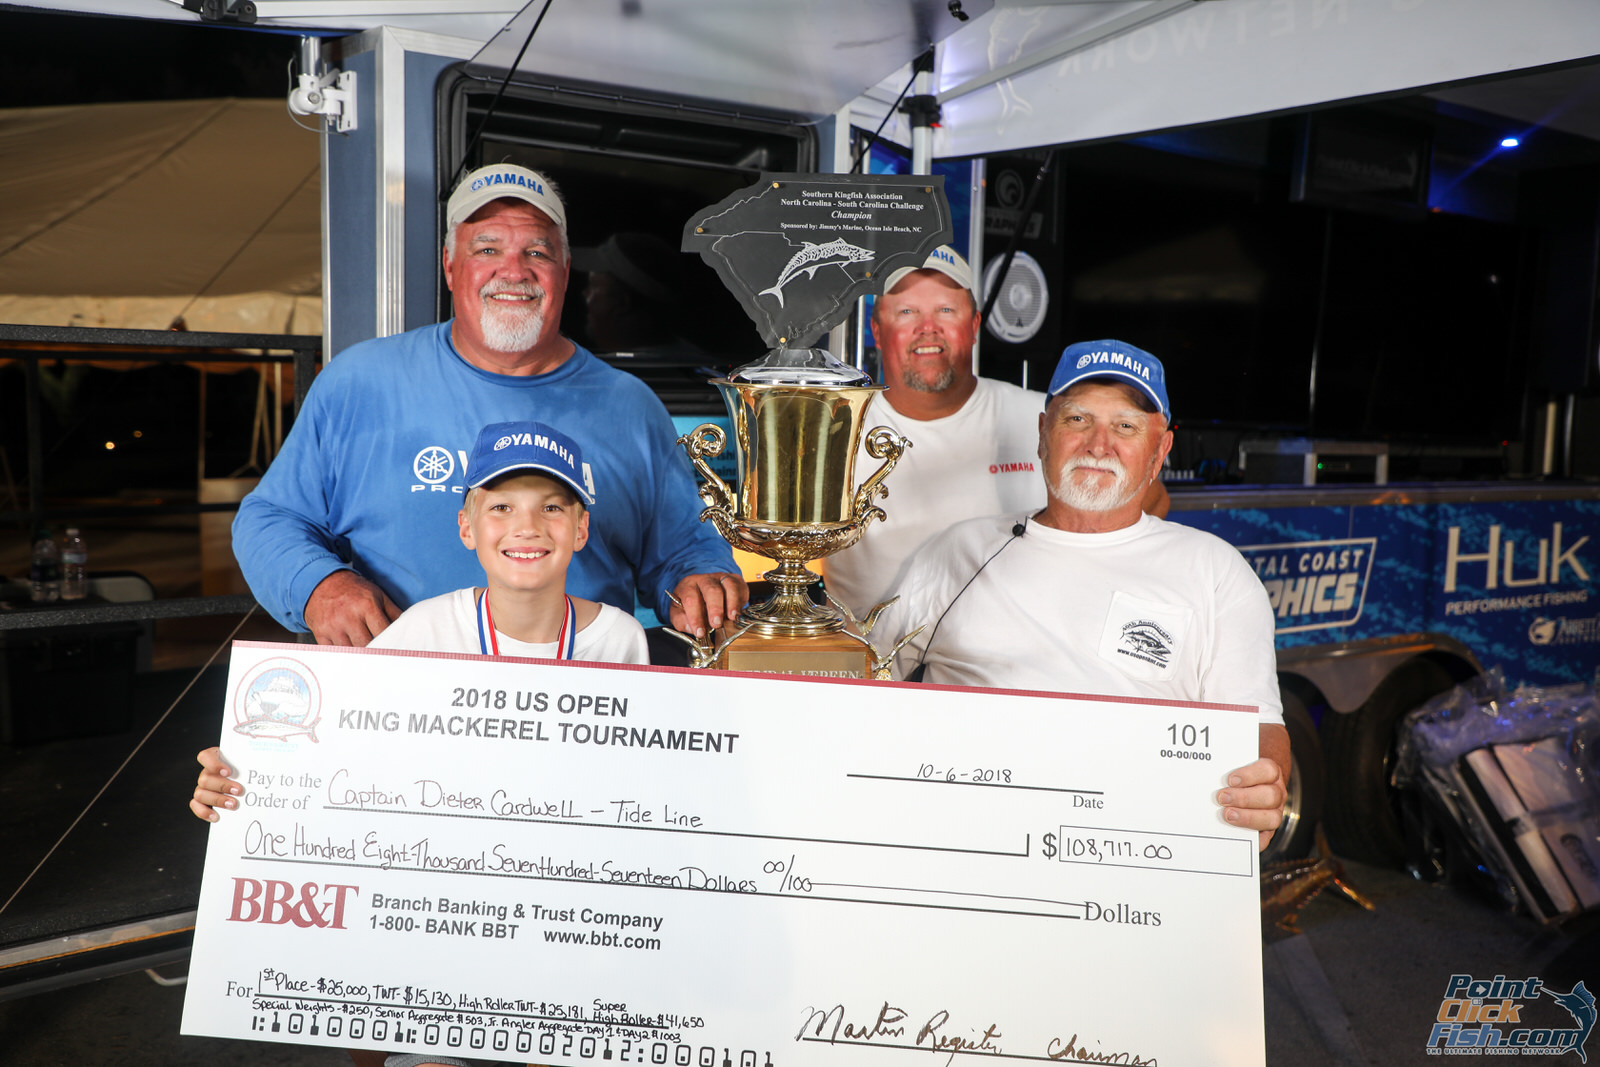 Team Tide Line - 2018 US Open King Mackerel Tournament Winners